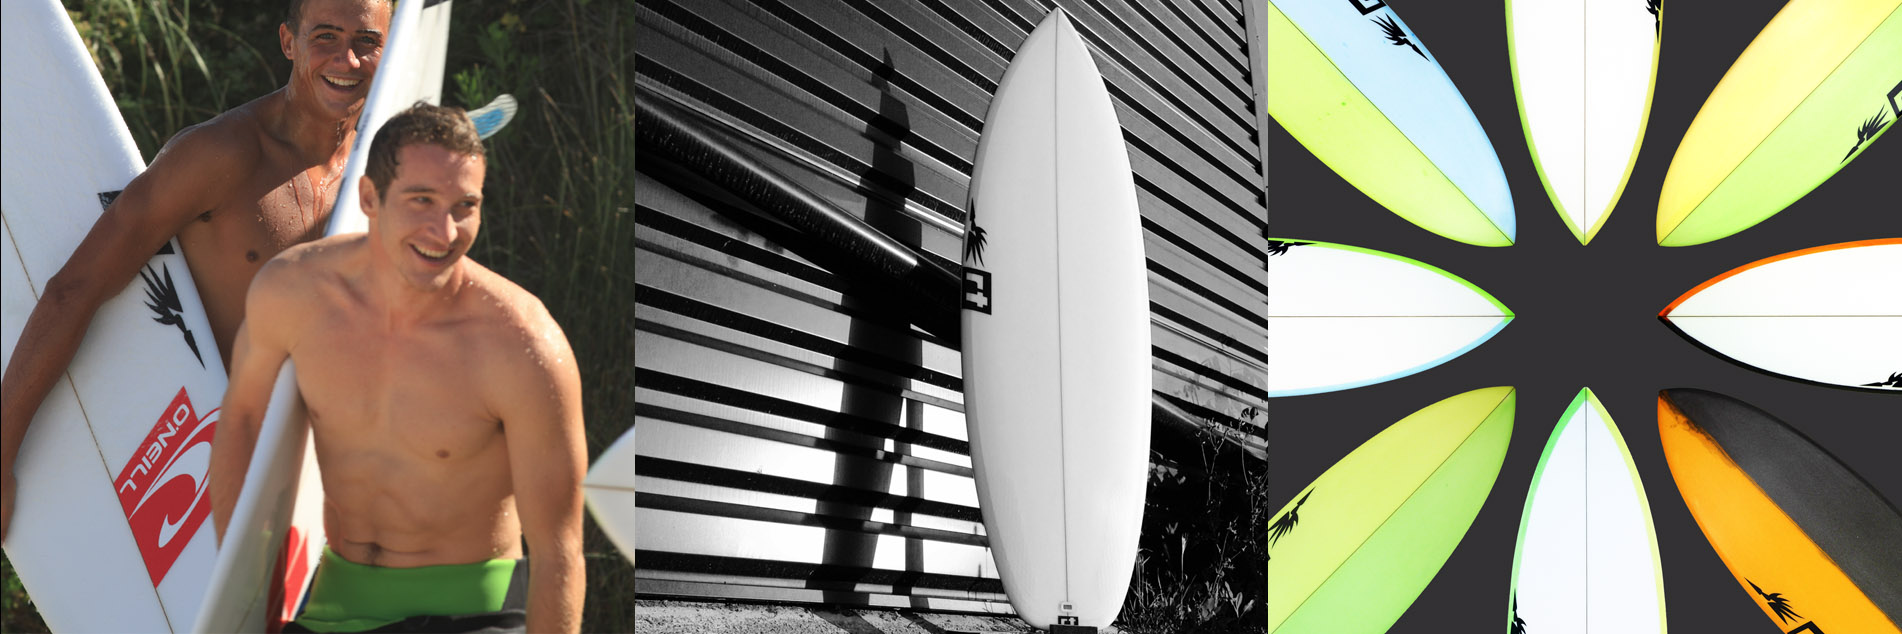 RTSurfboards_psykocandy-04